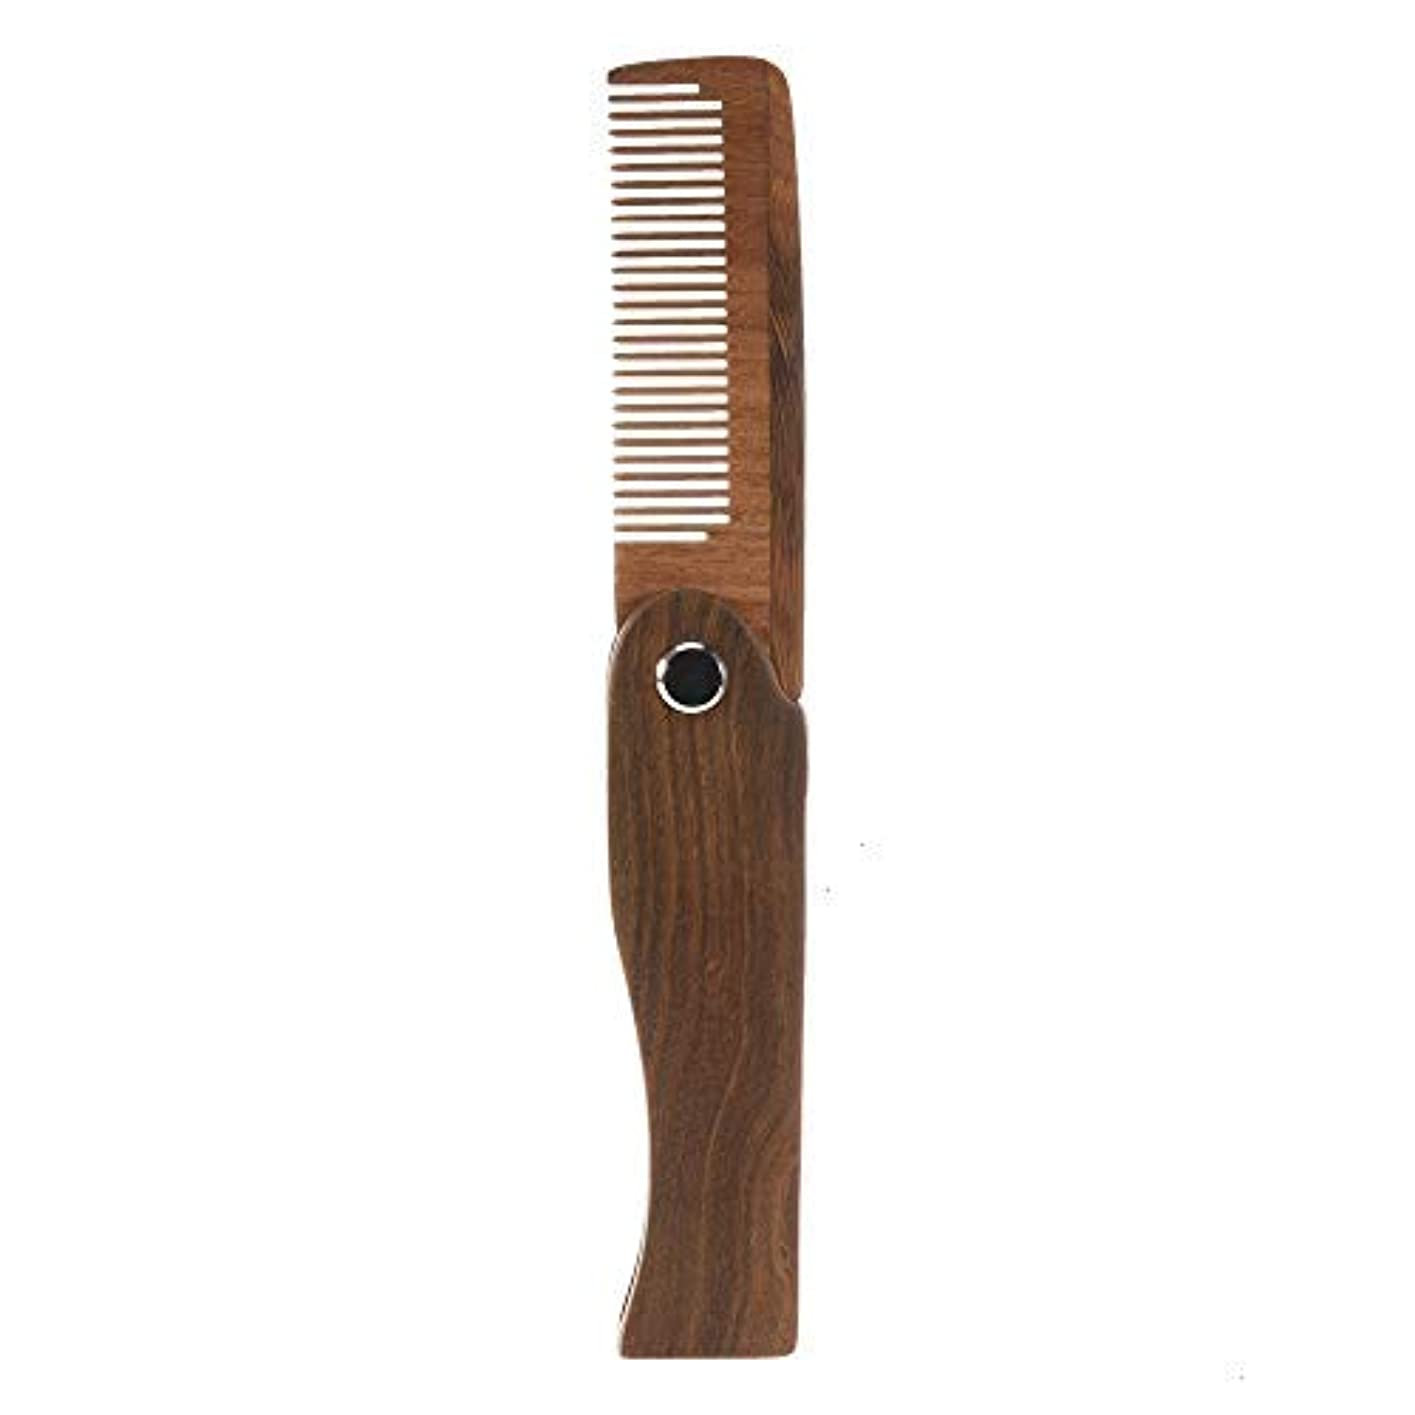 騙す内陸自我Feeko Folding Wooden Comb, 1 PC Pocket Size Hair Beard Fold Wooden Comb Durable Anti-Static Sandalwood Comb Every...